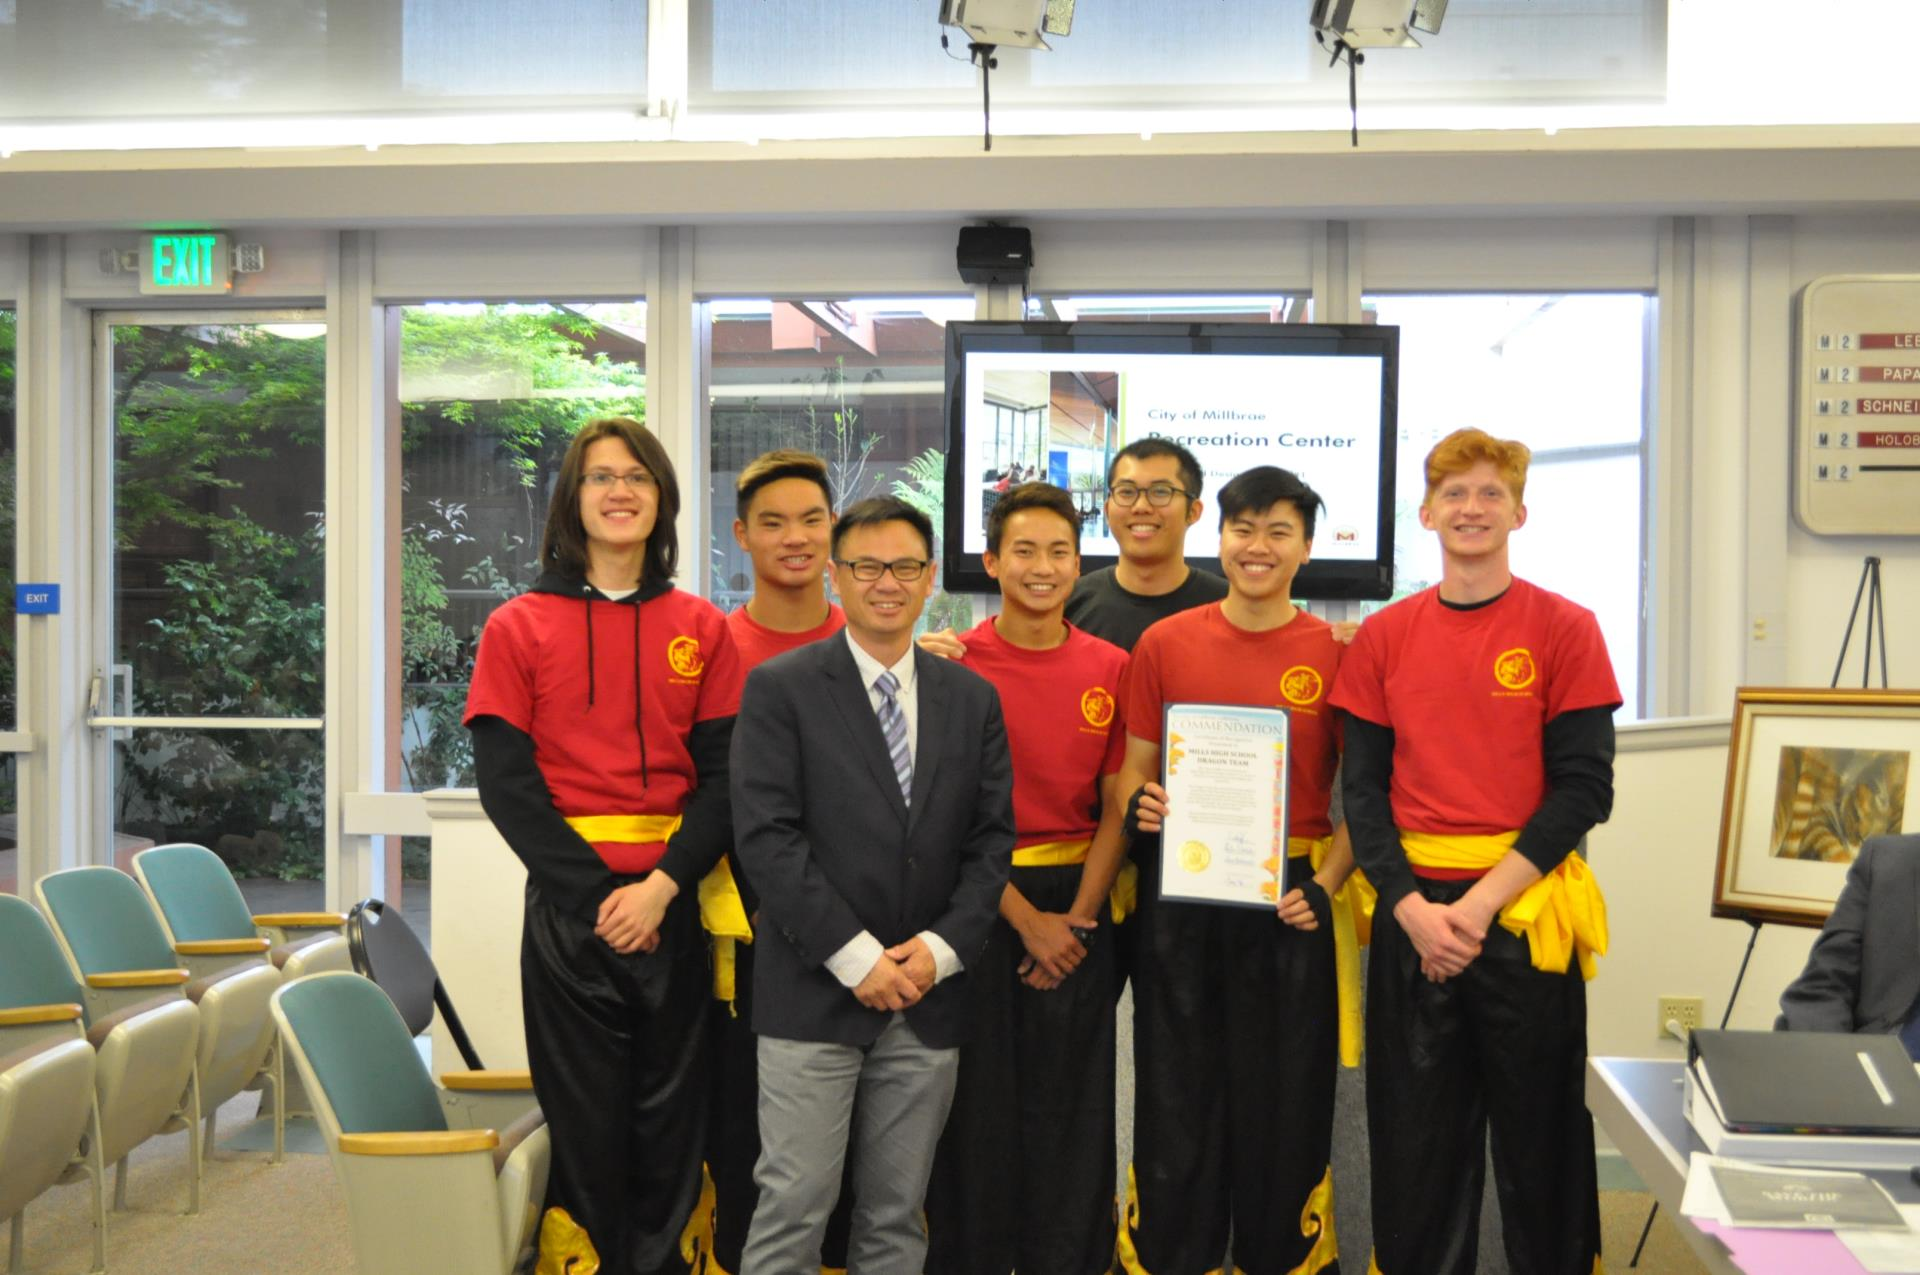 The City Council presented a commendation to the Mills High School Dragon Team for their 21 years of cultural arts performances throughout the Bay Area.